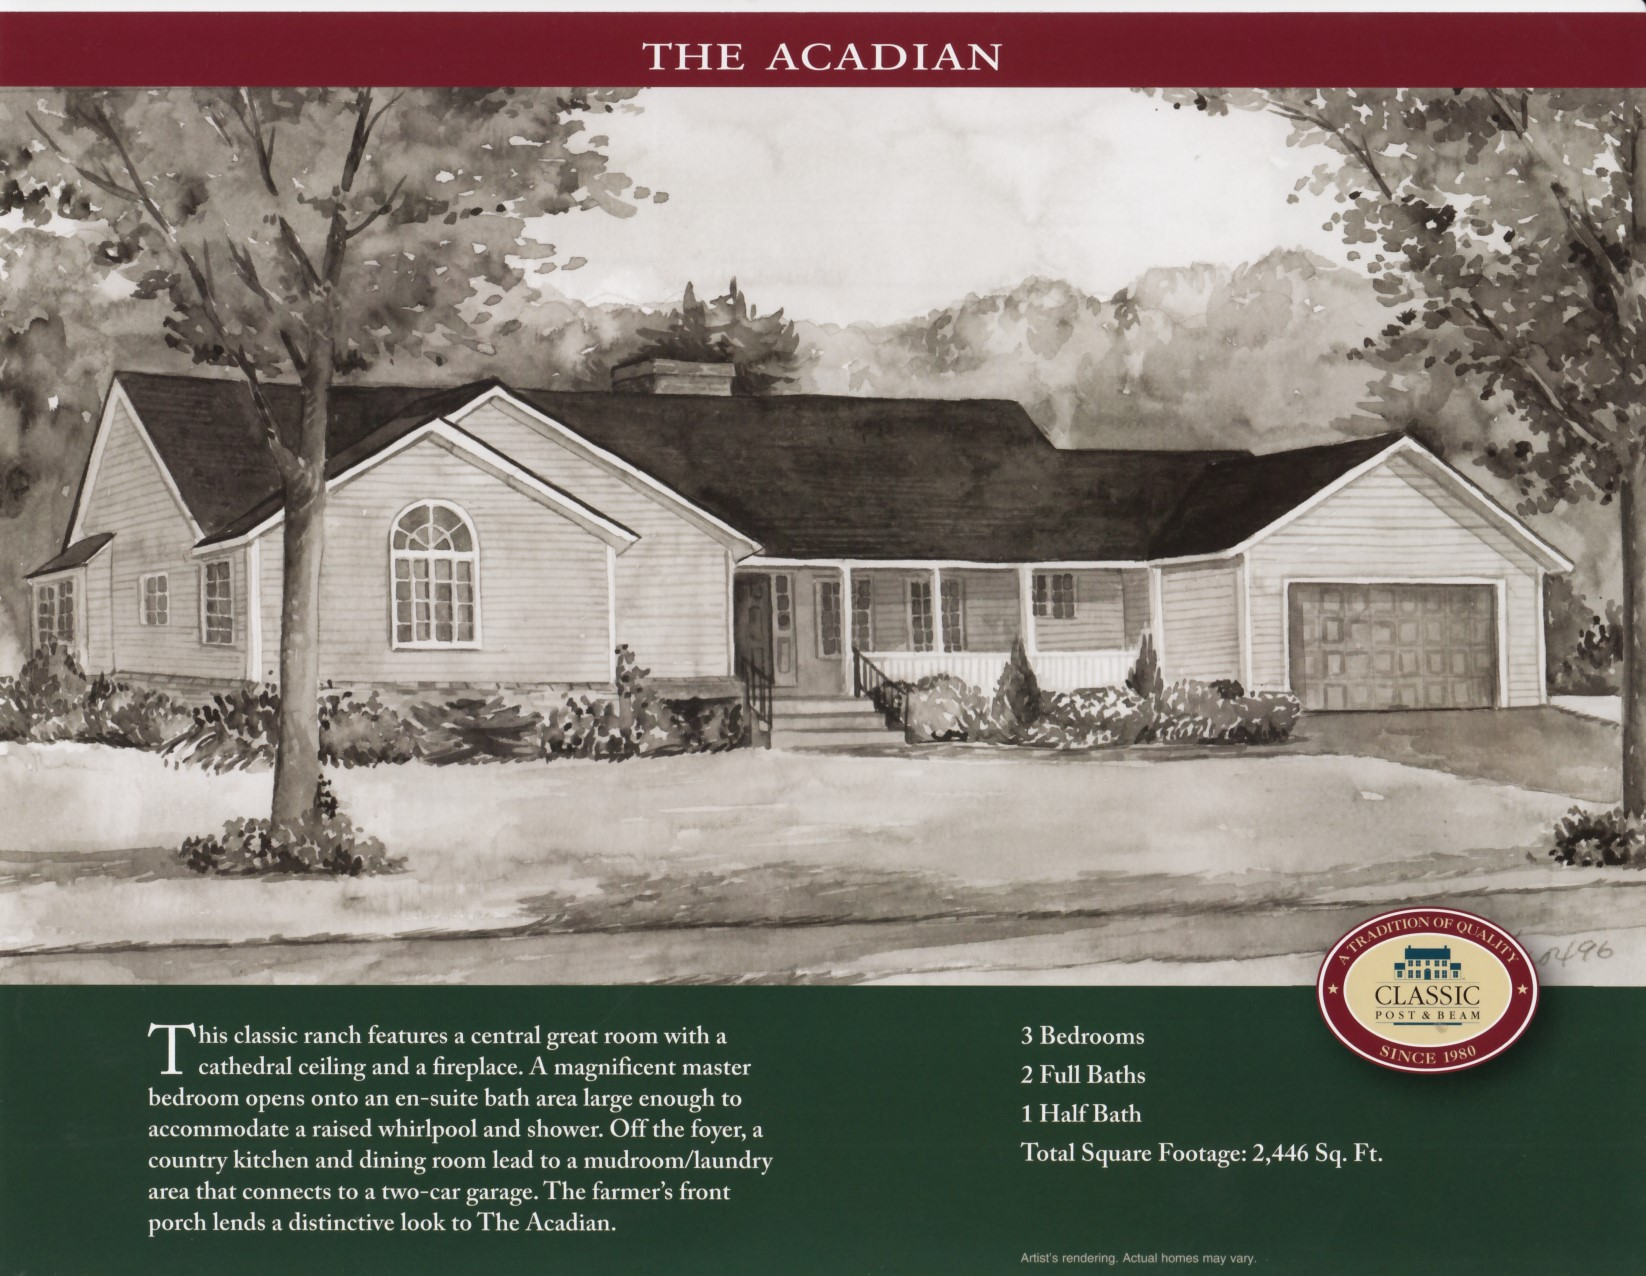 The Acadian - Northeastern Log Homes on creole style house plans, new country house plans, small colonial house plans, south louisiana house plans, island colonial house plans, louisiana style house plans, raised bed wall materials, saltbox farmhouse plans, historic house plans, french house plans, tudor revival house plans, small country house plans, elevated house plans, mission revival house plans, southern living house plans, cottage house plans, country style house plans, raised cabin plans, simple country house plans,